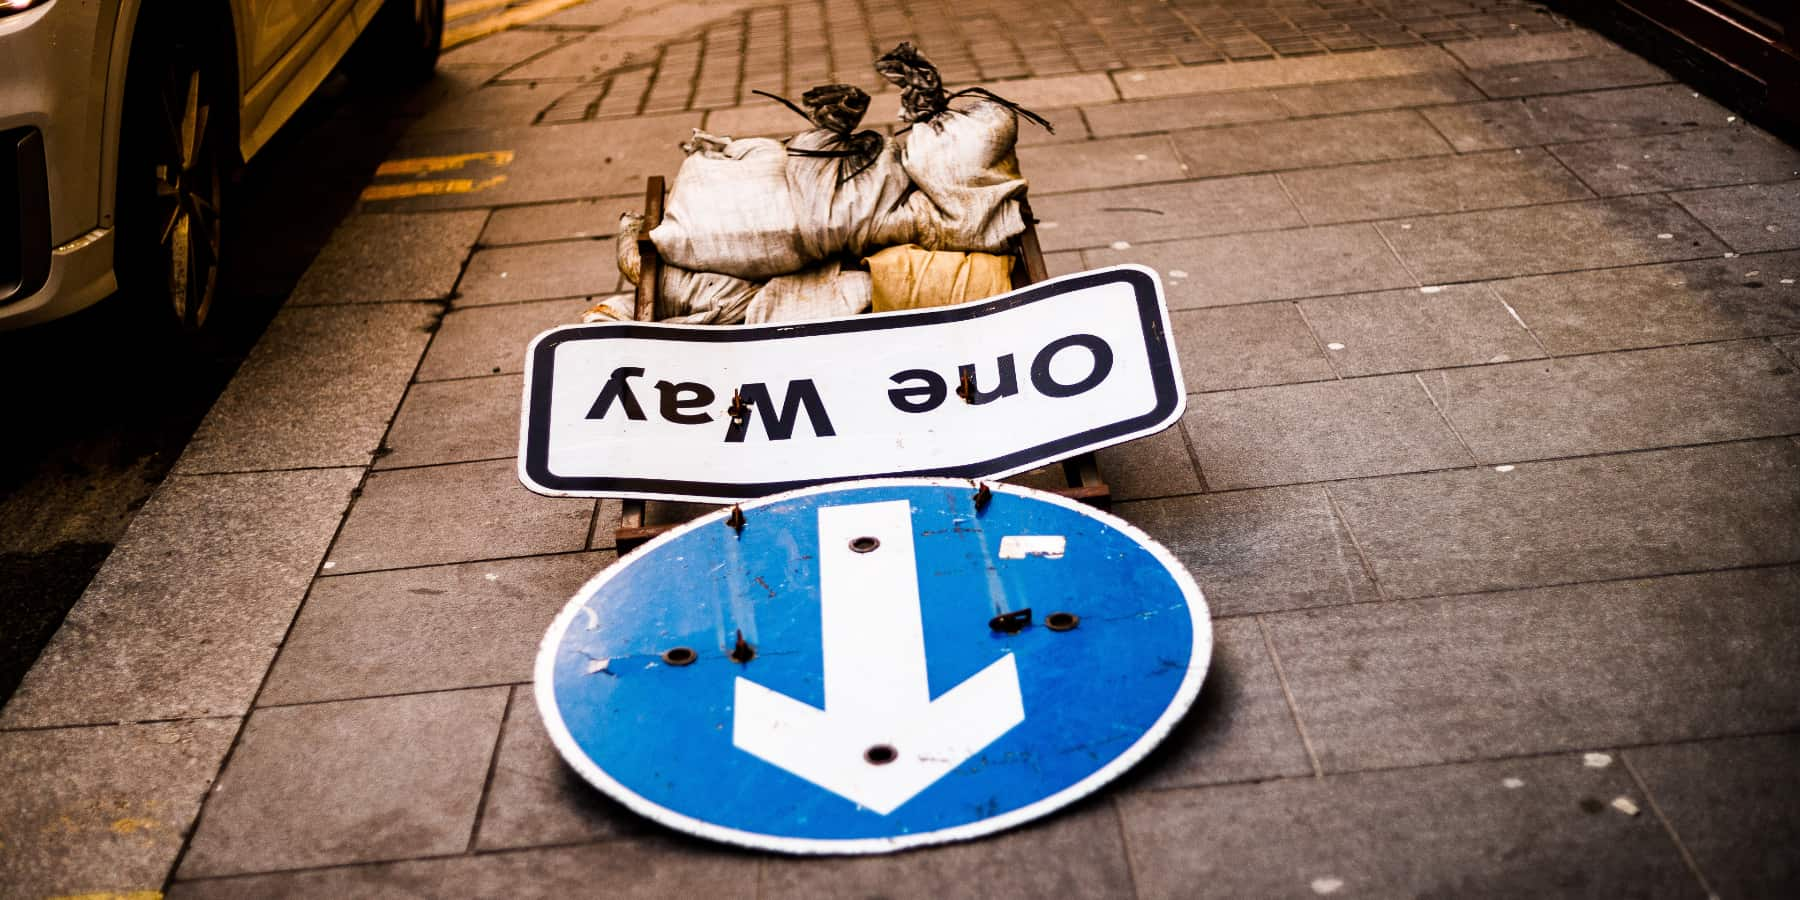 A one way sign, knocked down on the pavement.